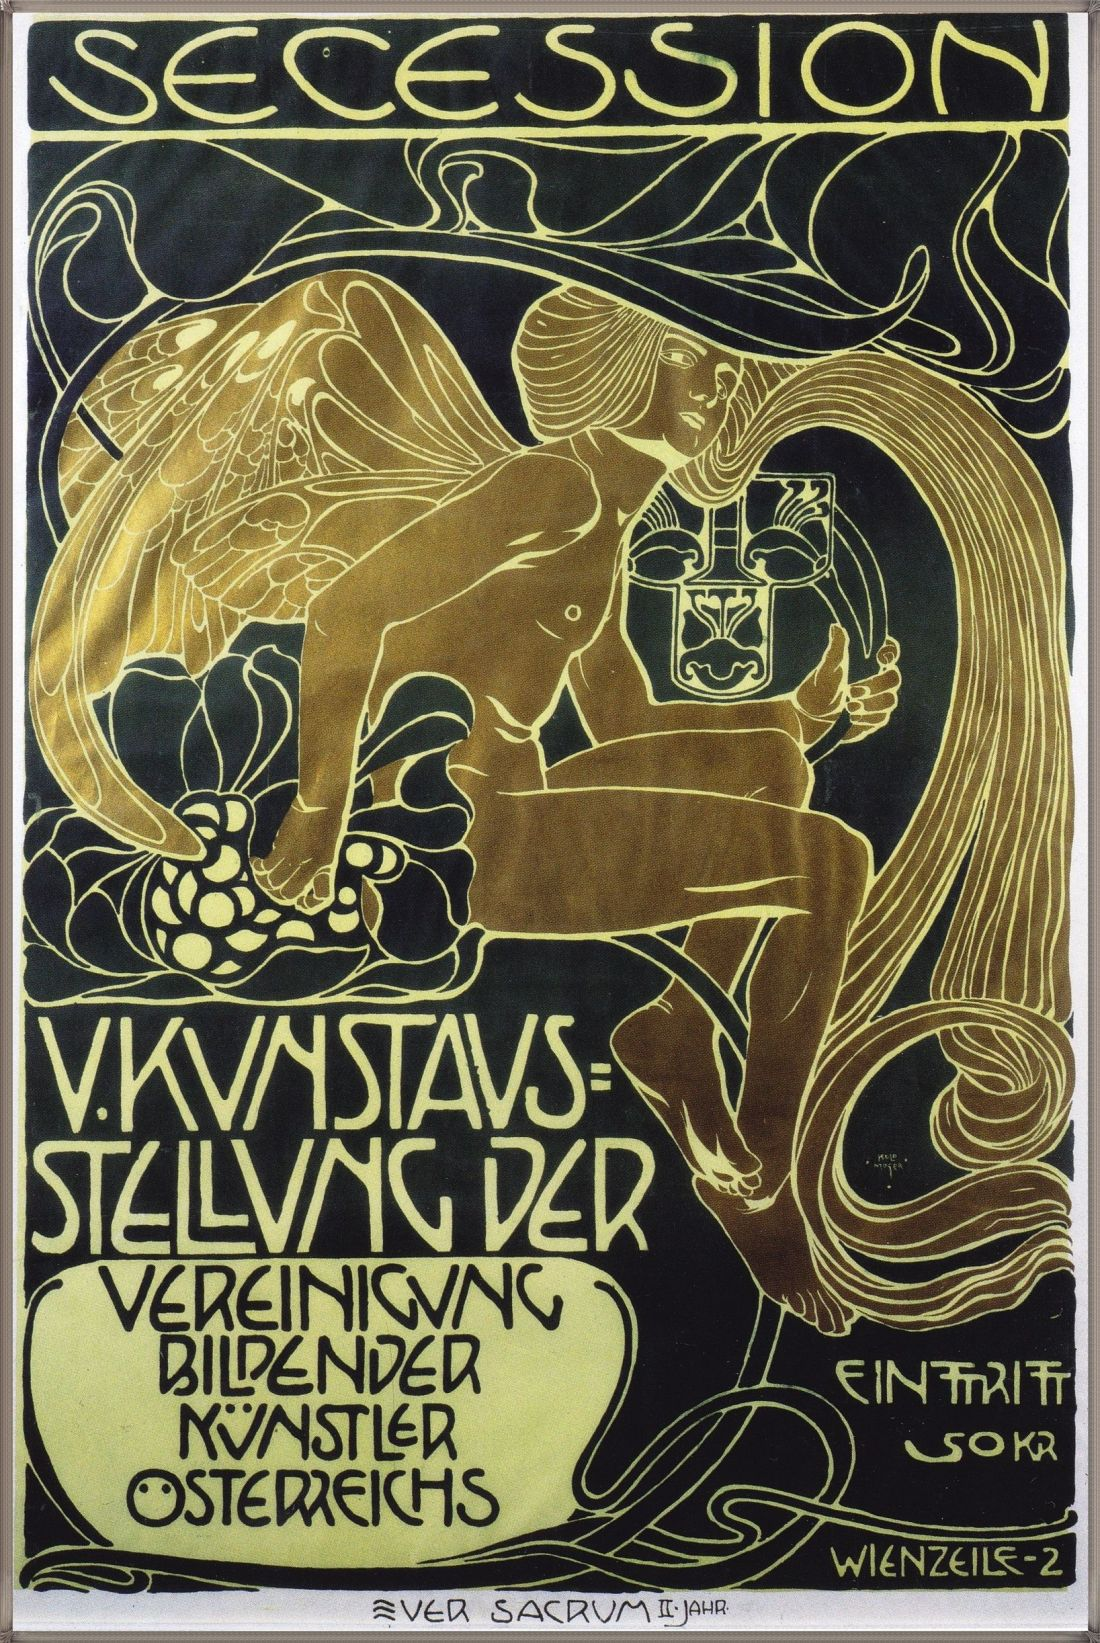 Poster for the 5th Exhibition of the Wiener Secession. 1905.